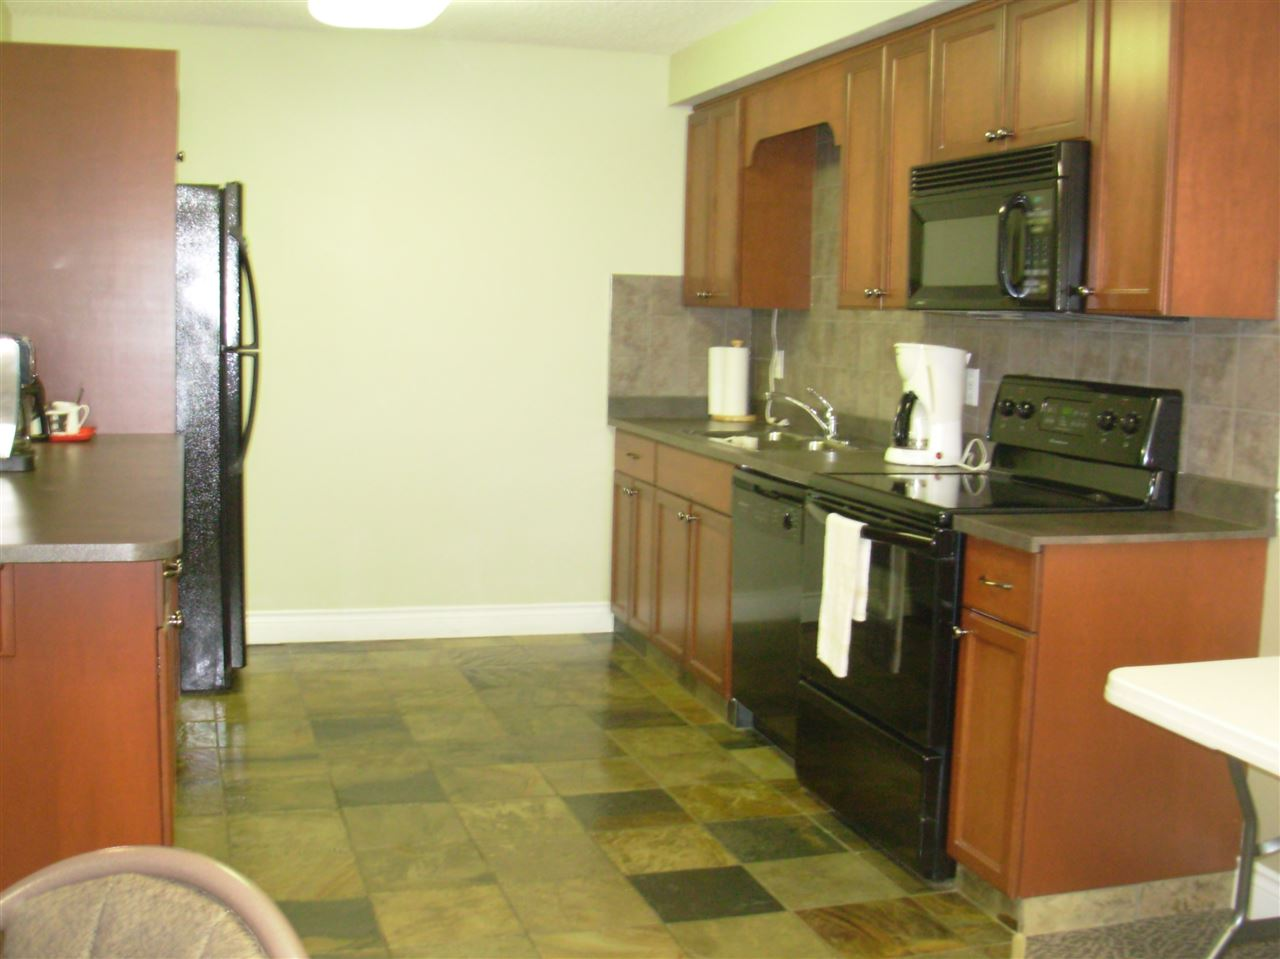 The spacious social room even has a full kitchen!